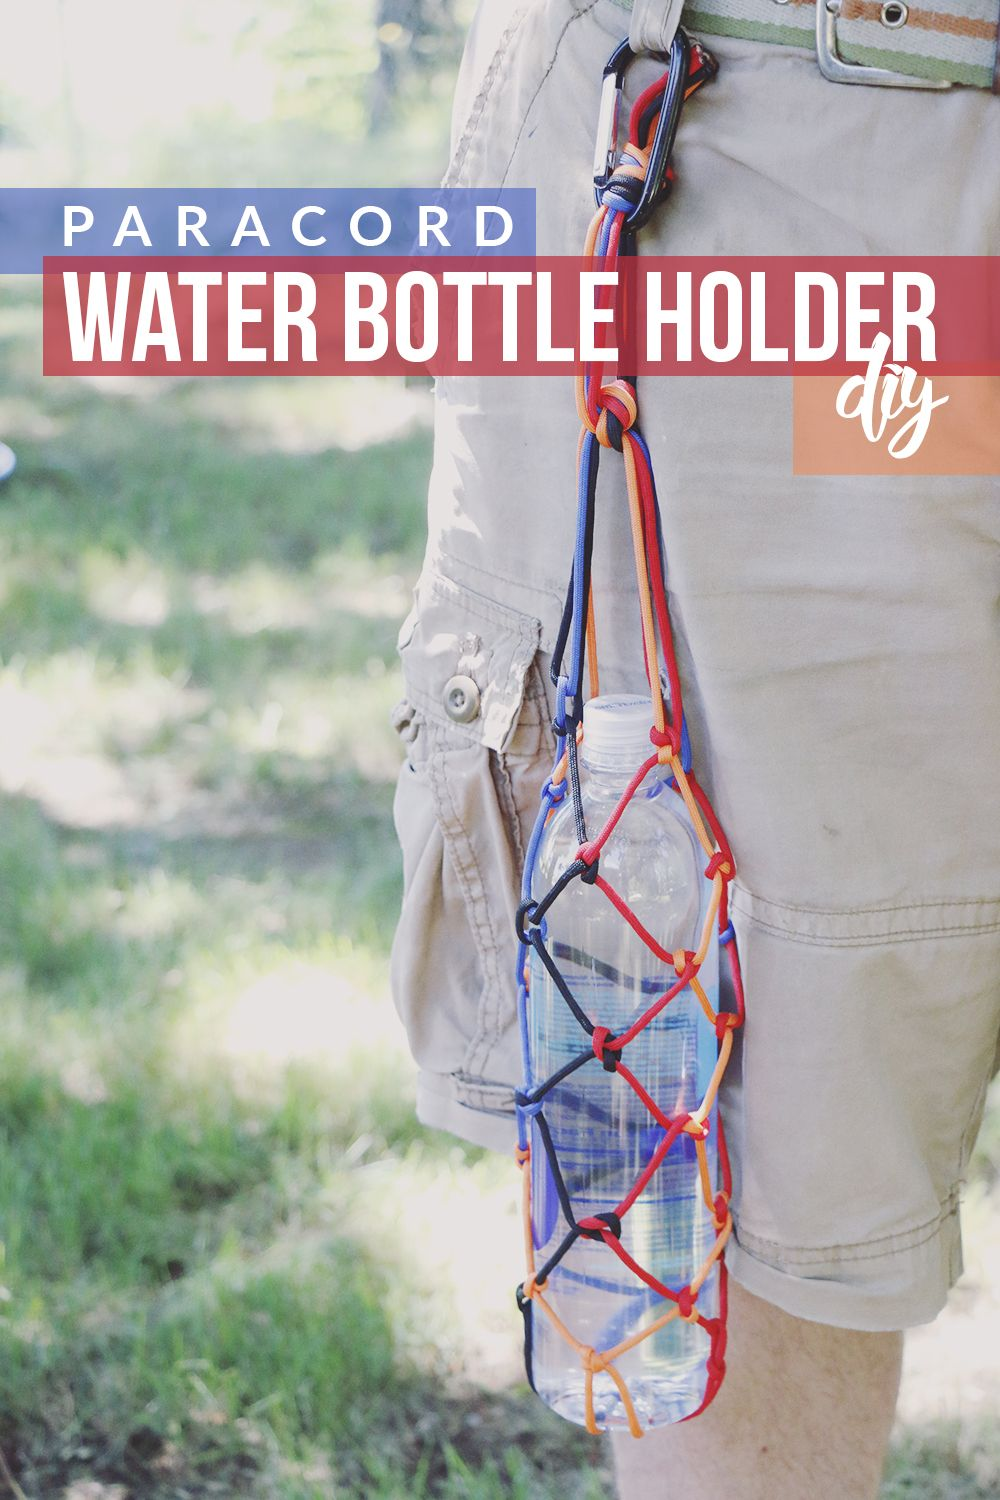 Paracord Water Bottle Holder DIY + Hiking Hydration